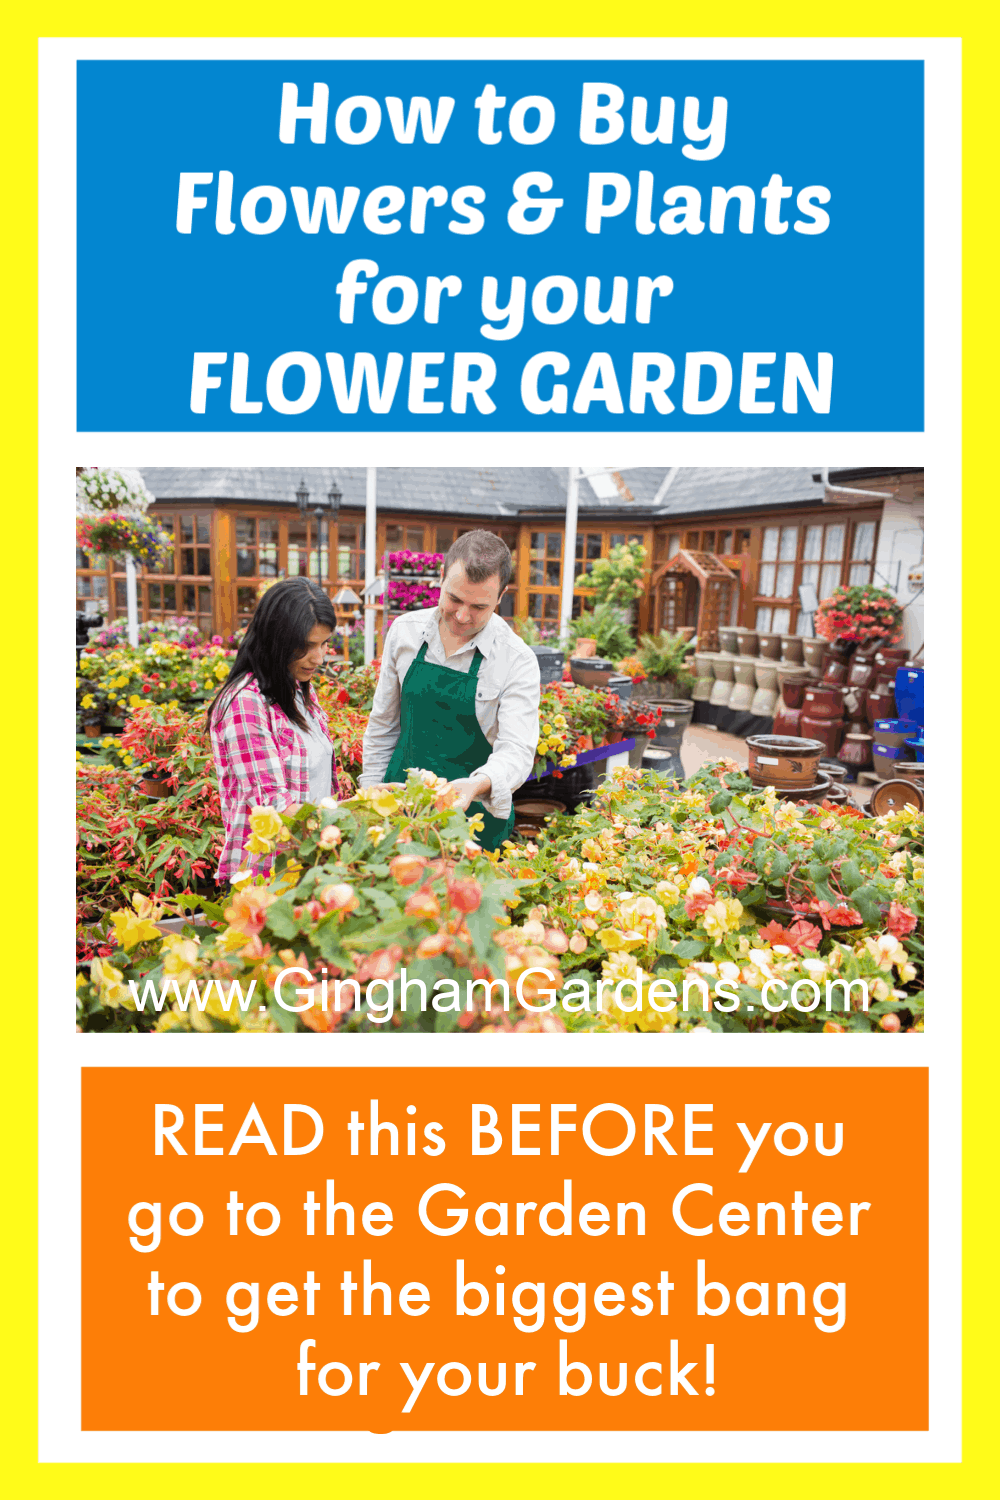 Image of Garden Center with Text Overlay - How to Buy Flowers & Plants for your Flower Garden